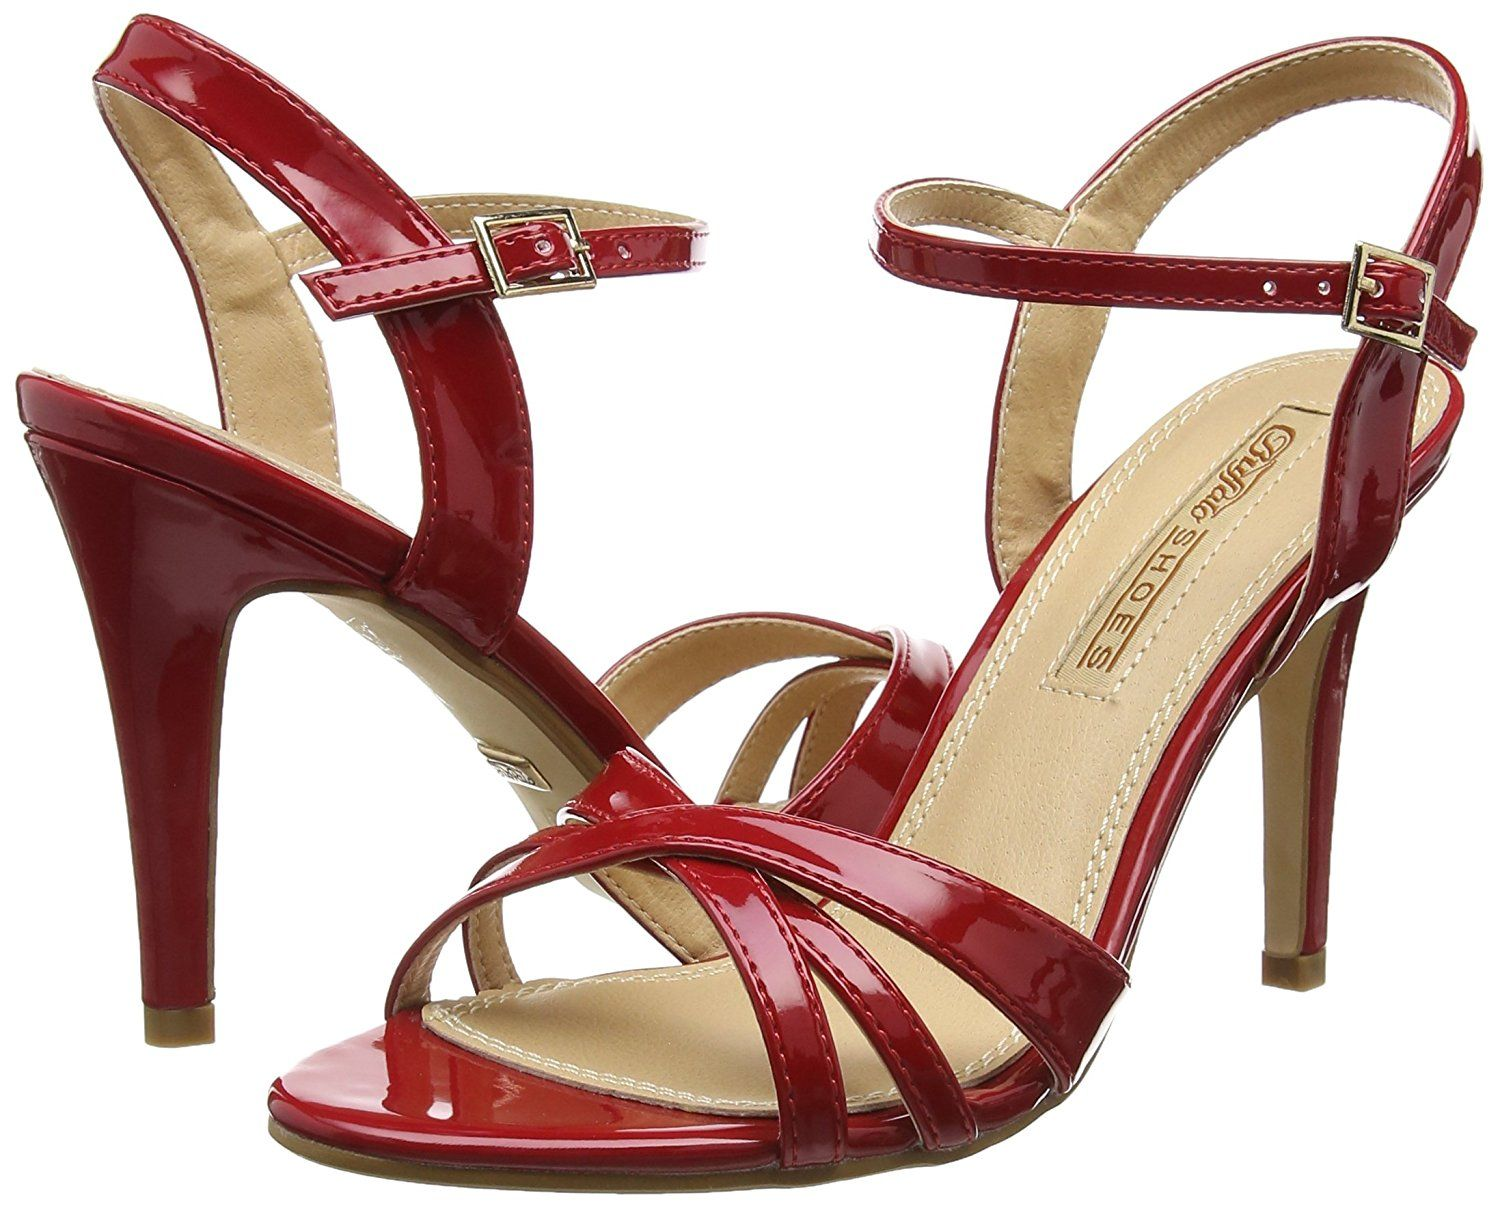 312703 Patent Pu, Womens Wedge Heels Sandals Buffalo